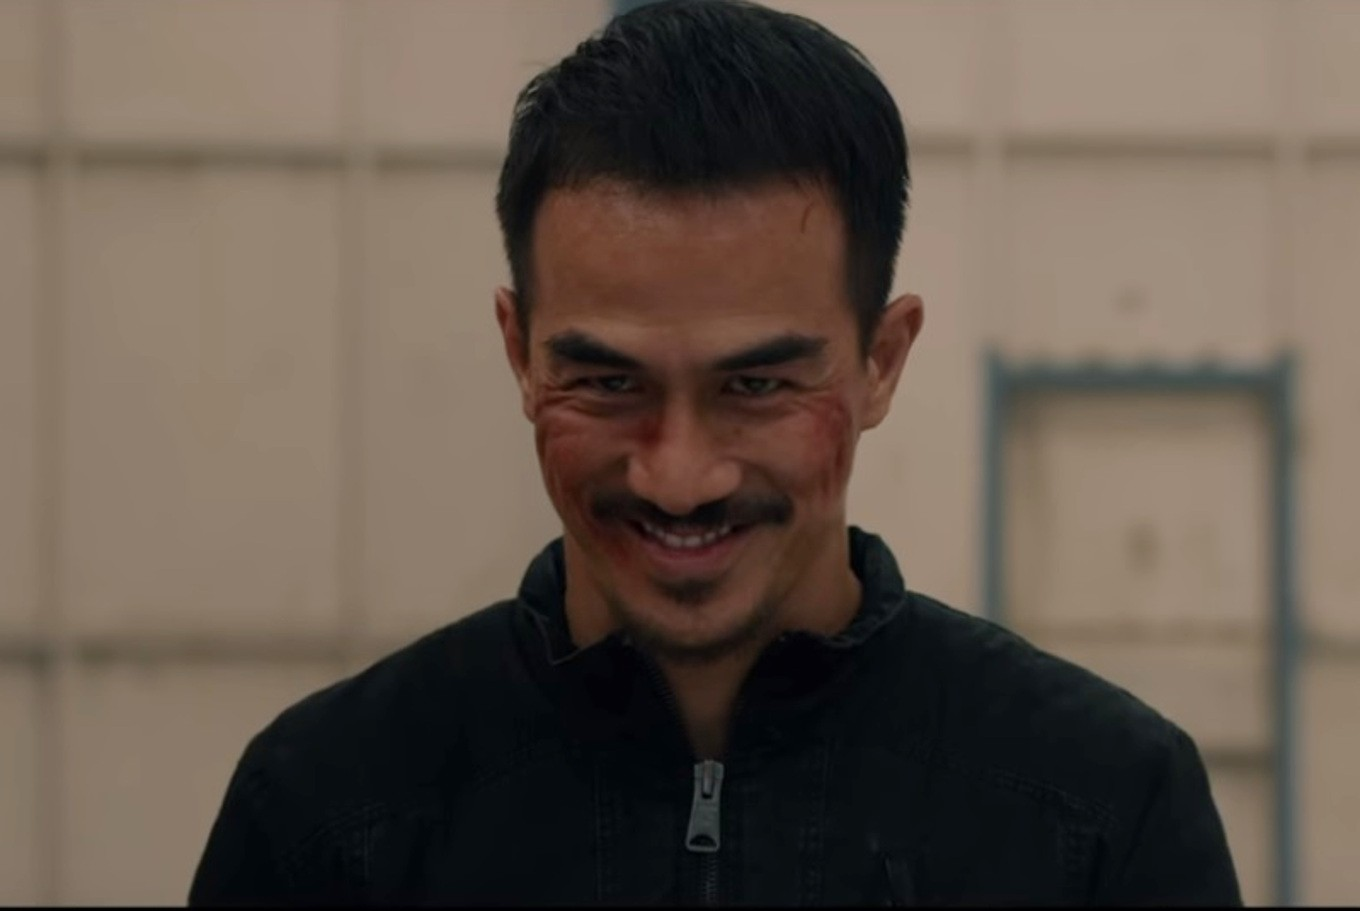 Upcoming 'Mortal Kombat' adaptation casts Joe Taslim as Sub-Zero